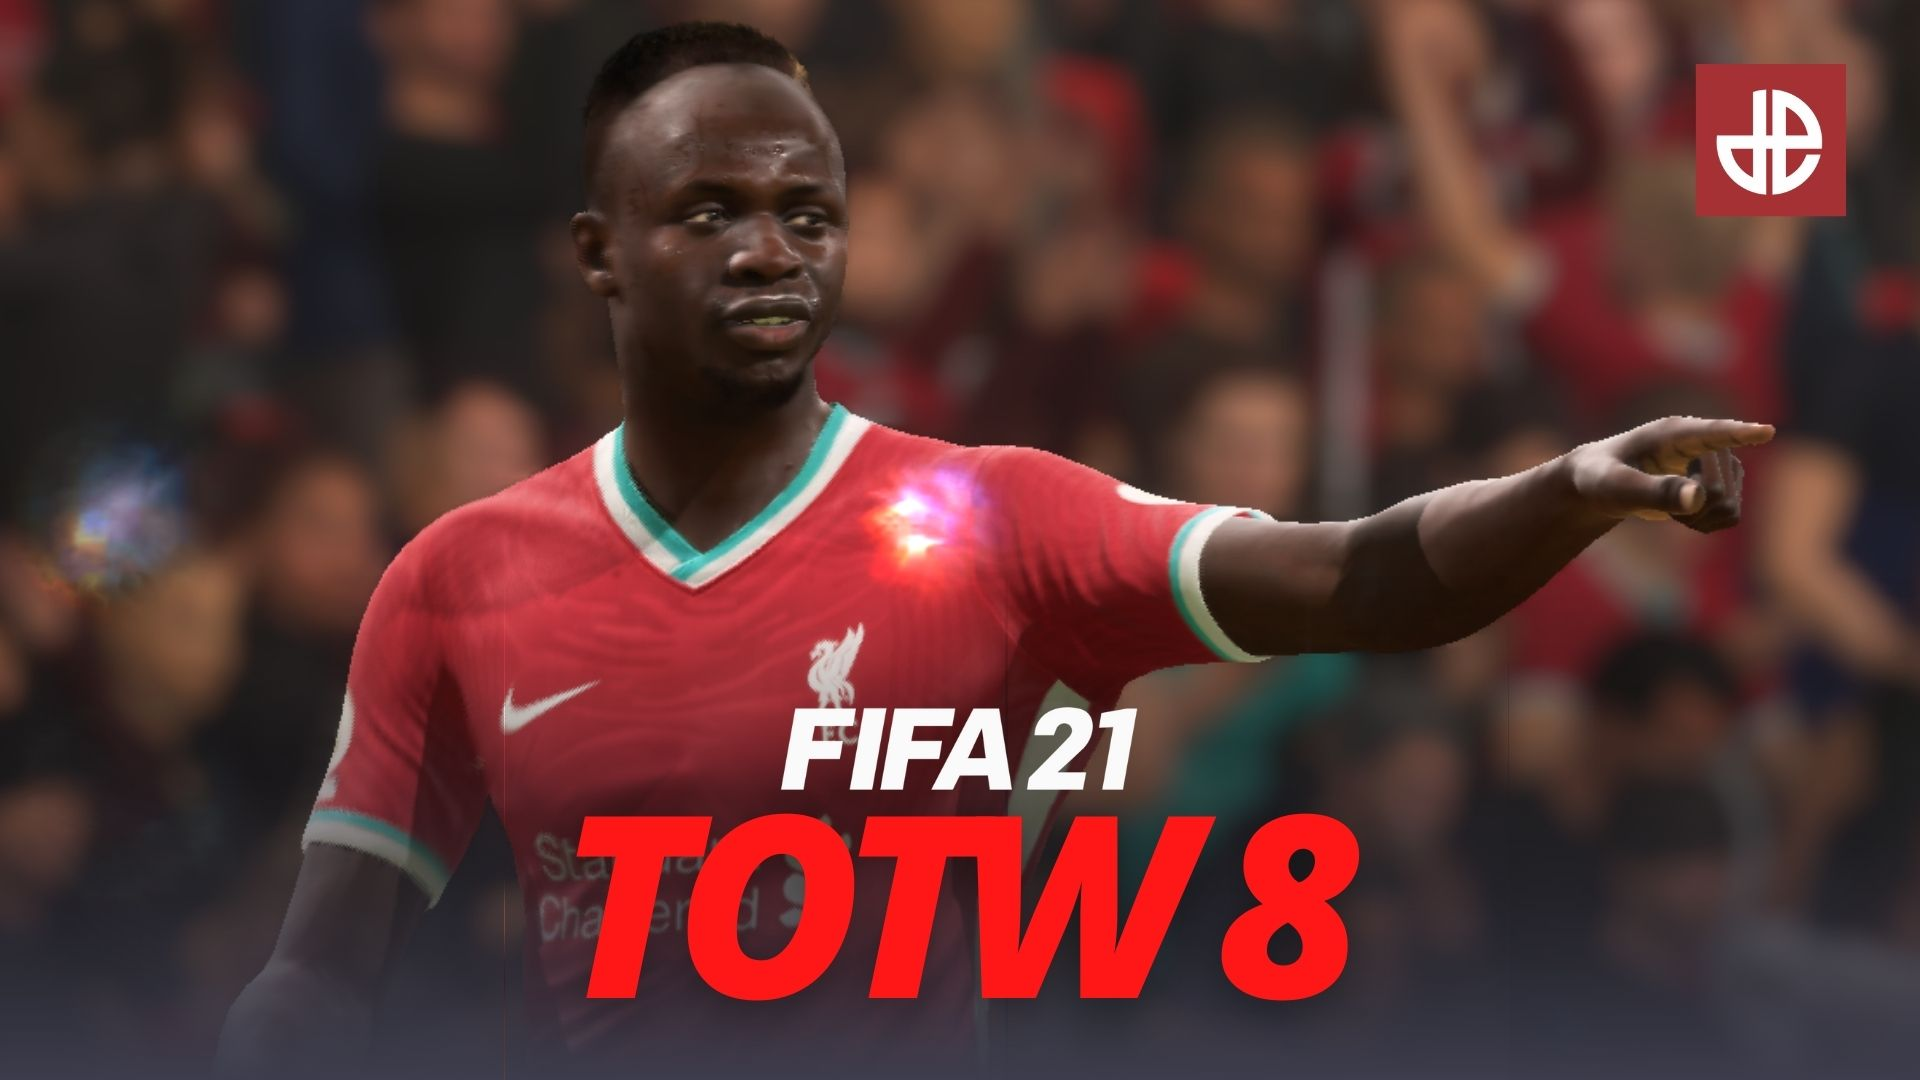 Sadio Mane points above a FIFA 21 Team of the Week TOTW 8 logo.